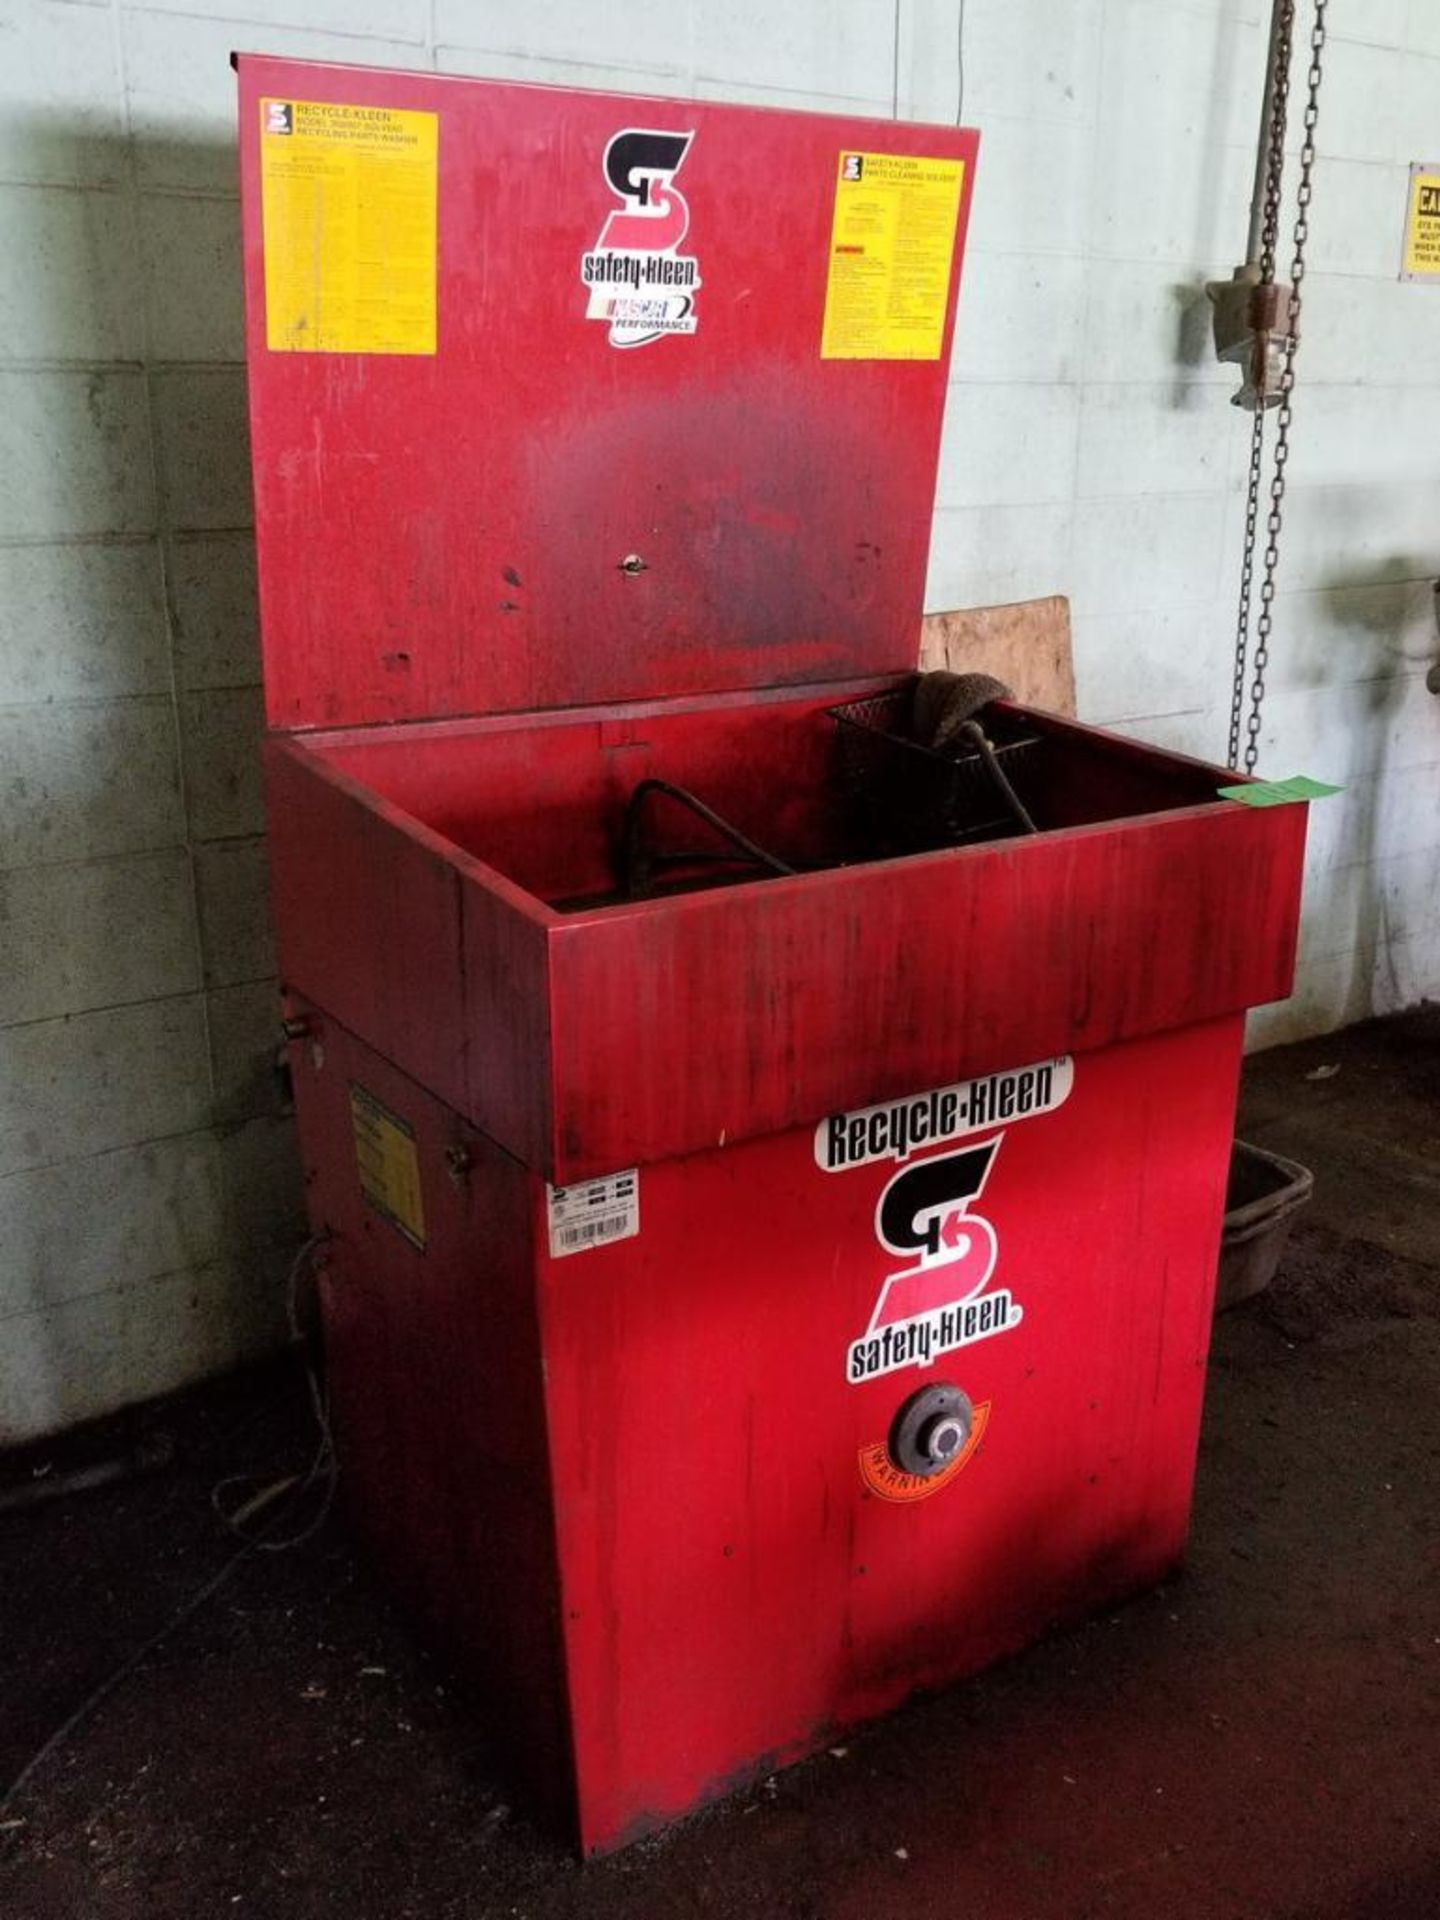 Lot 14 - Safety-Kleen Mdl. 250/257 Solvent Recycling Parts Washer